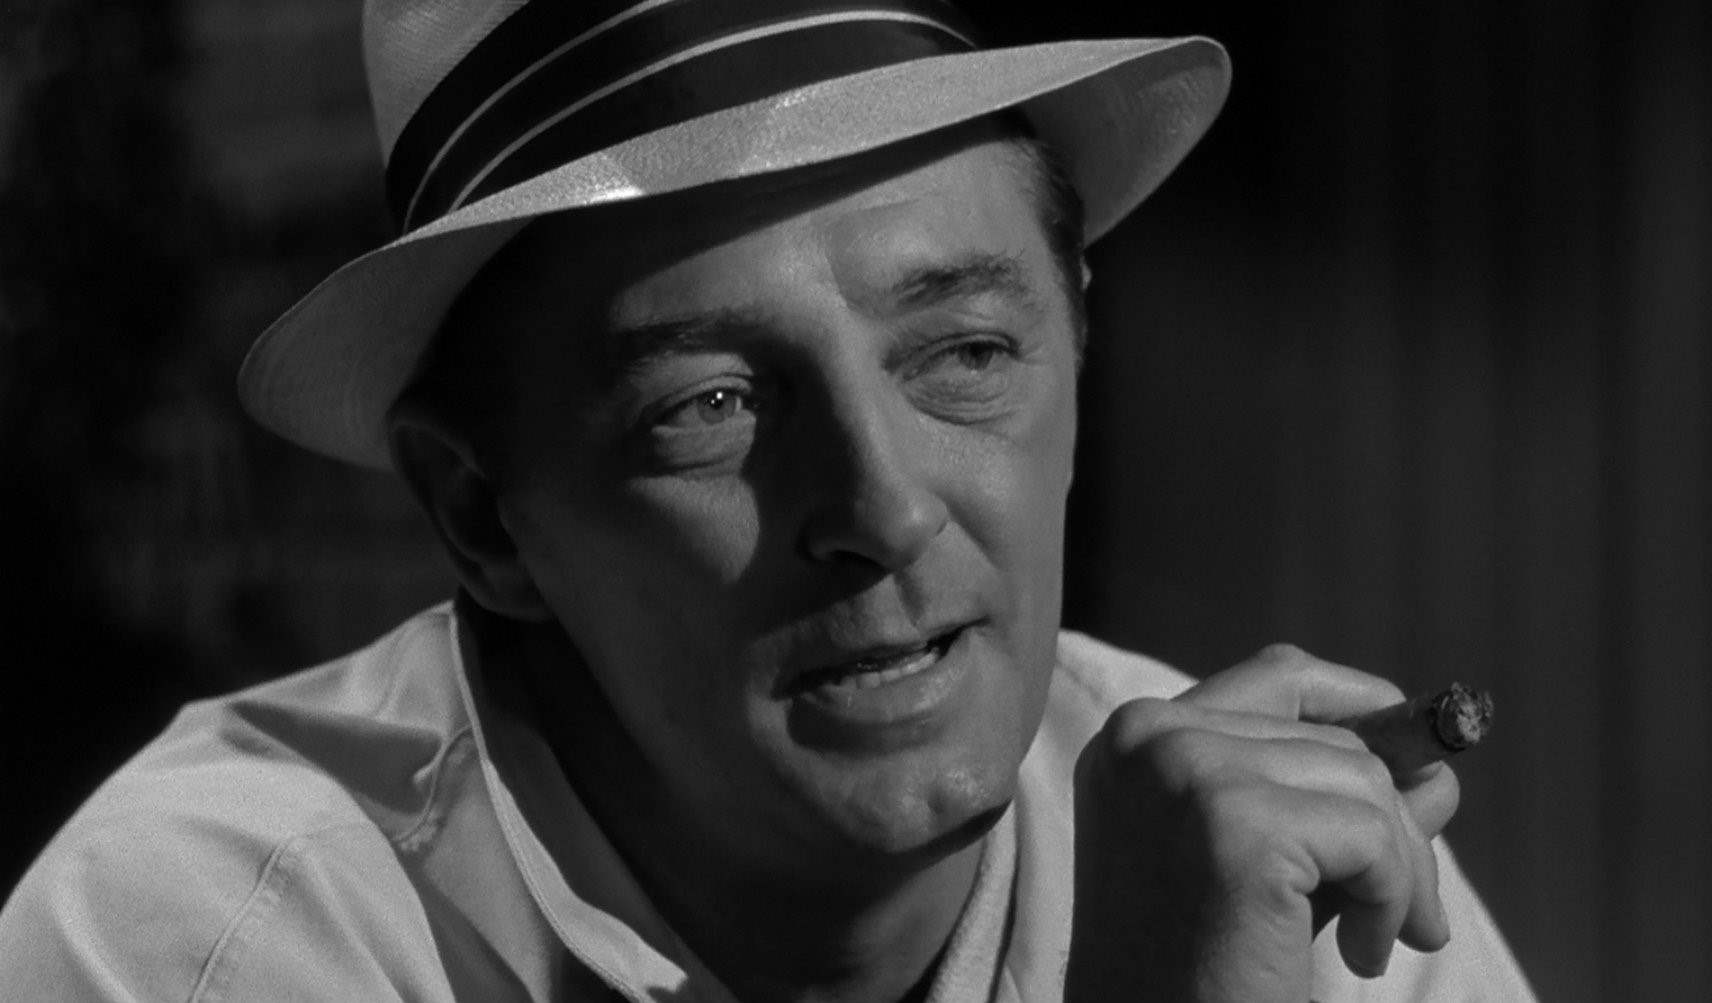 Robert Mitchum as the terrifying villain Max Cady in 1962's Cape Fear.